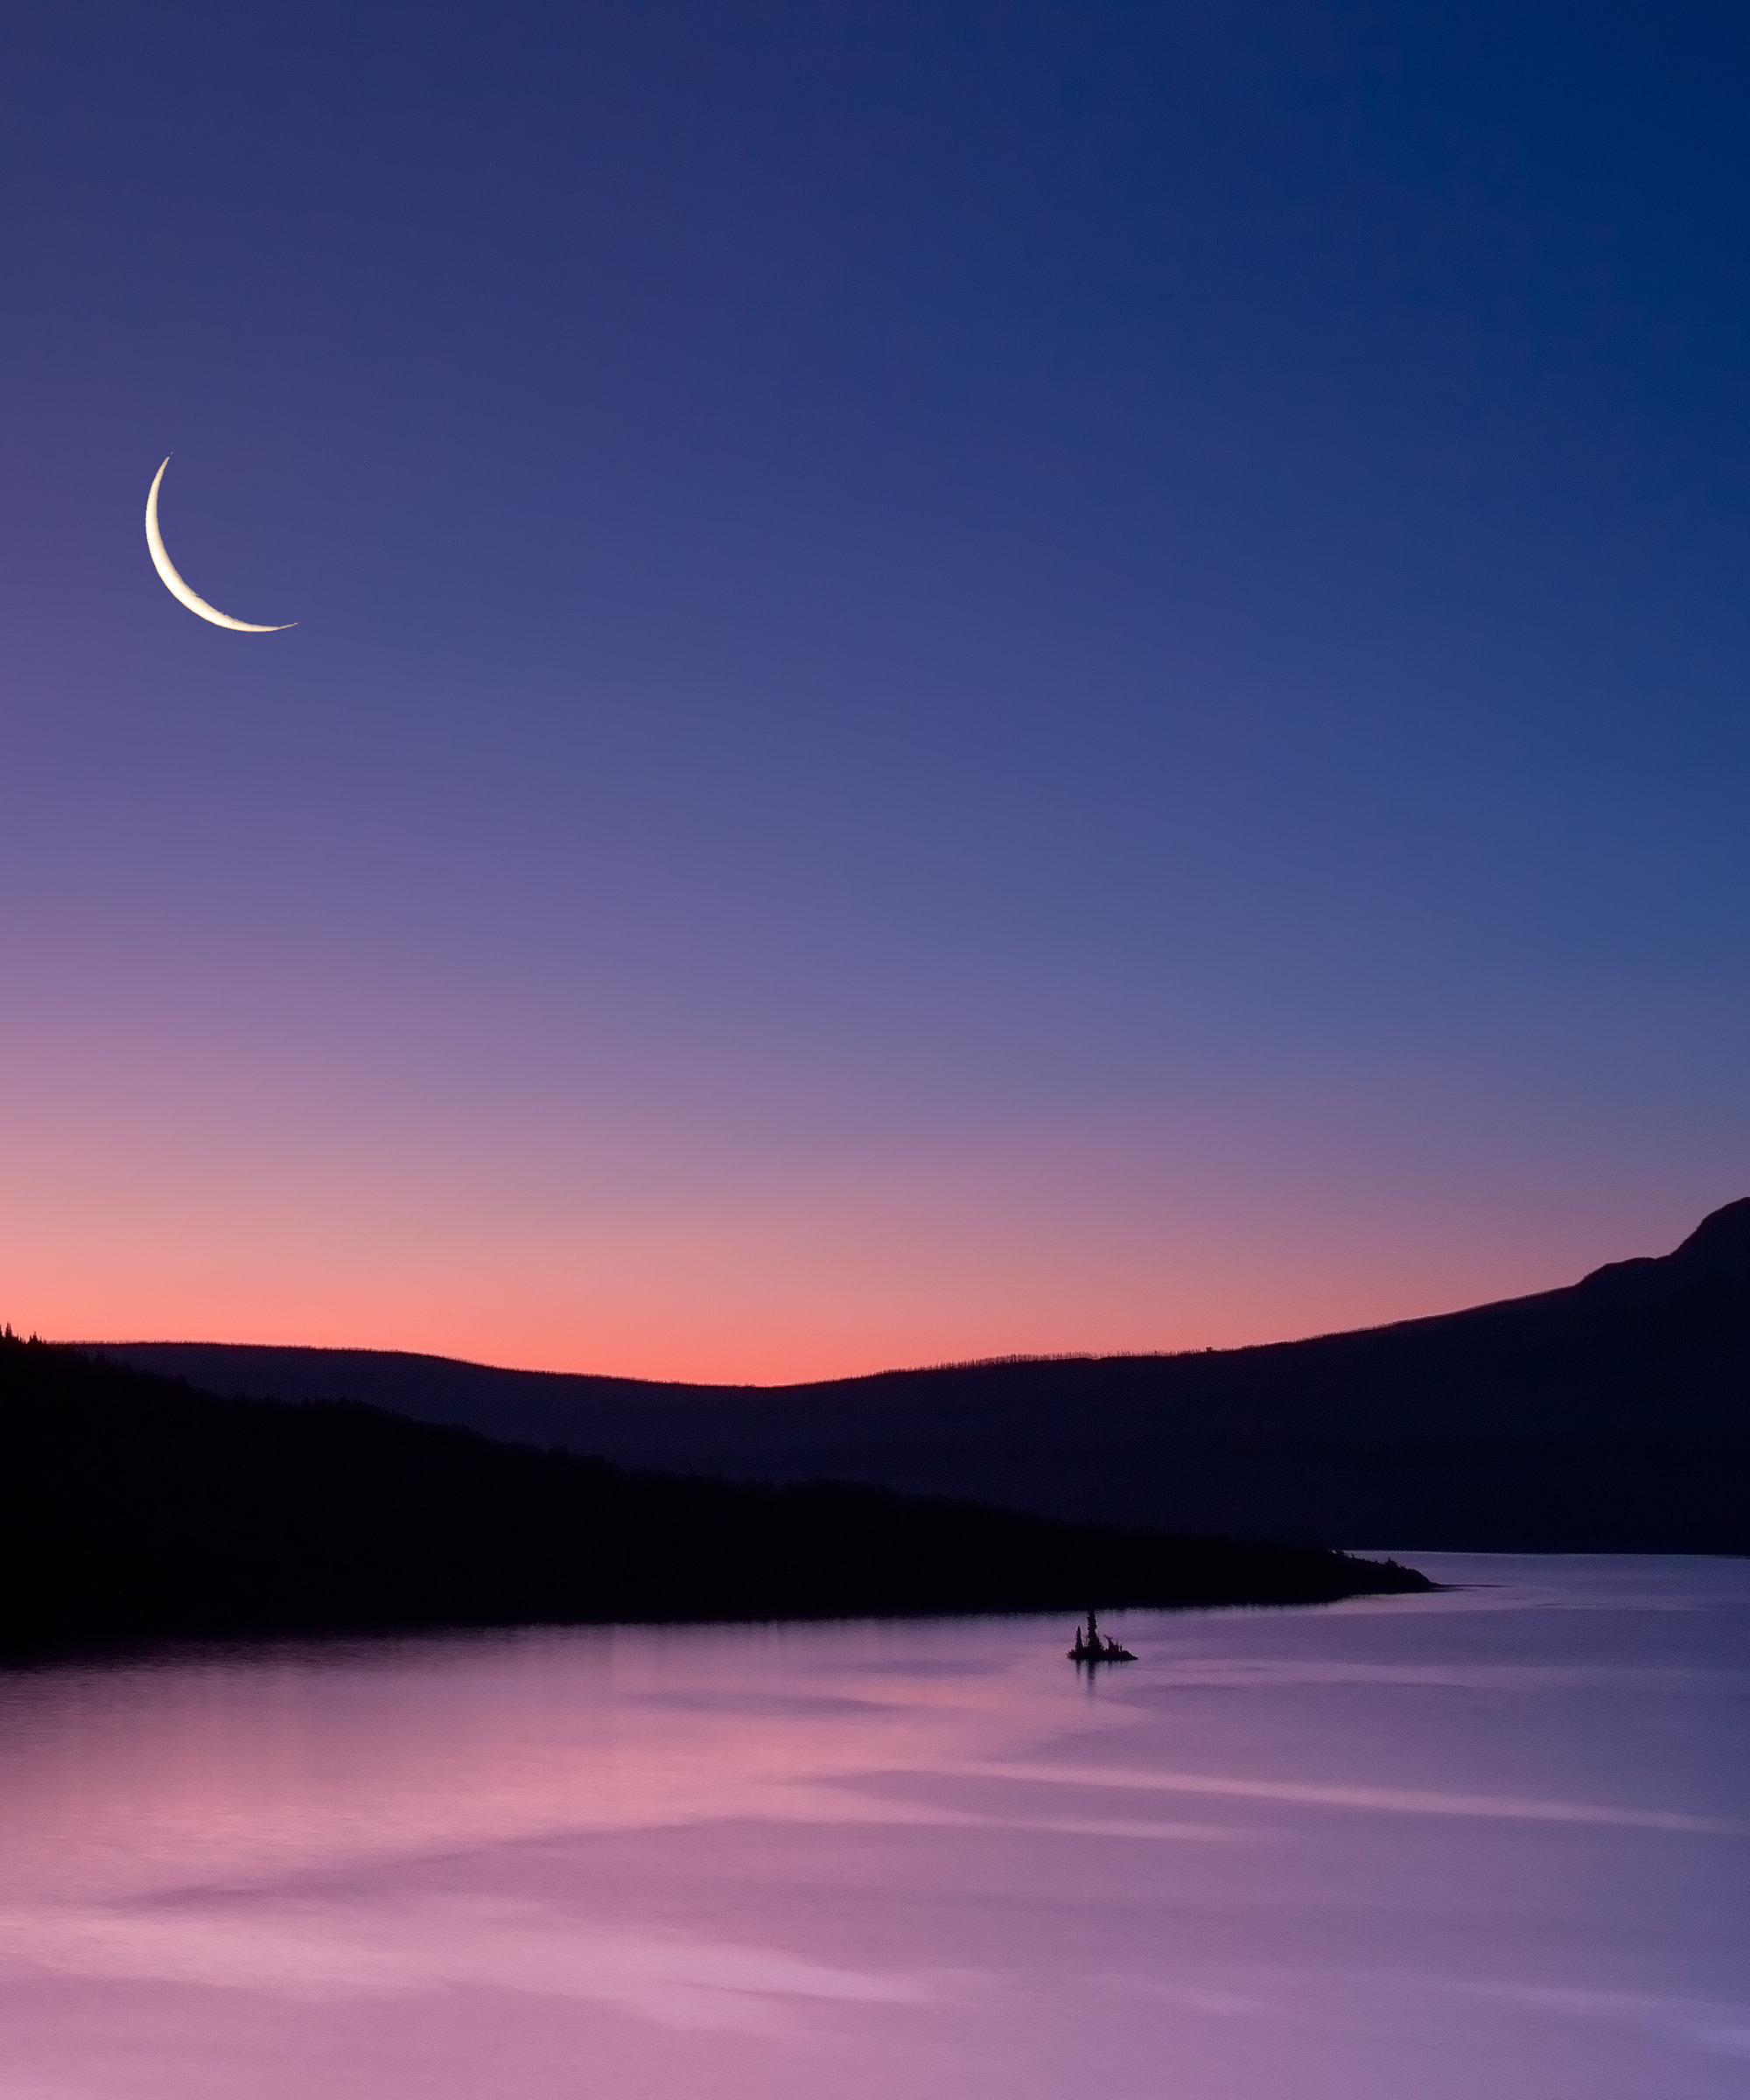 Waxing Crescent Moon Lunar Phases Spiritual Meaning Image Moonphasesdiagramjpg For Term Side Of Card